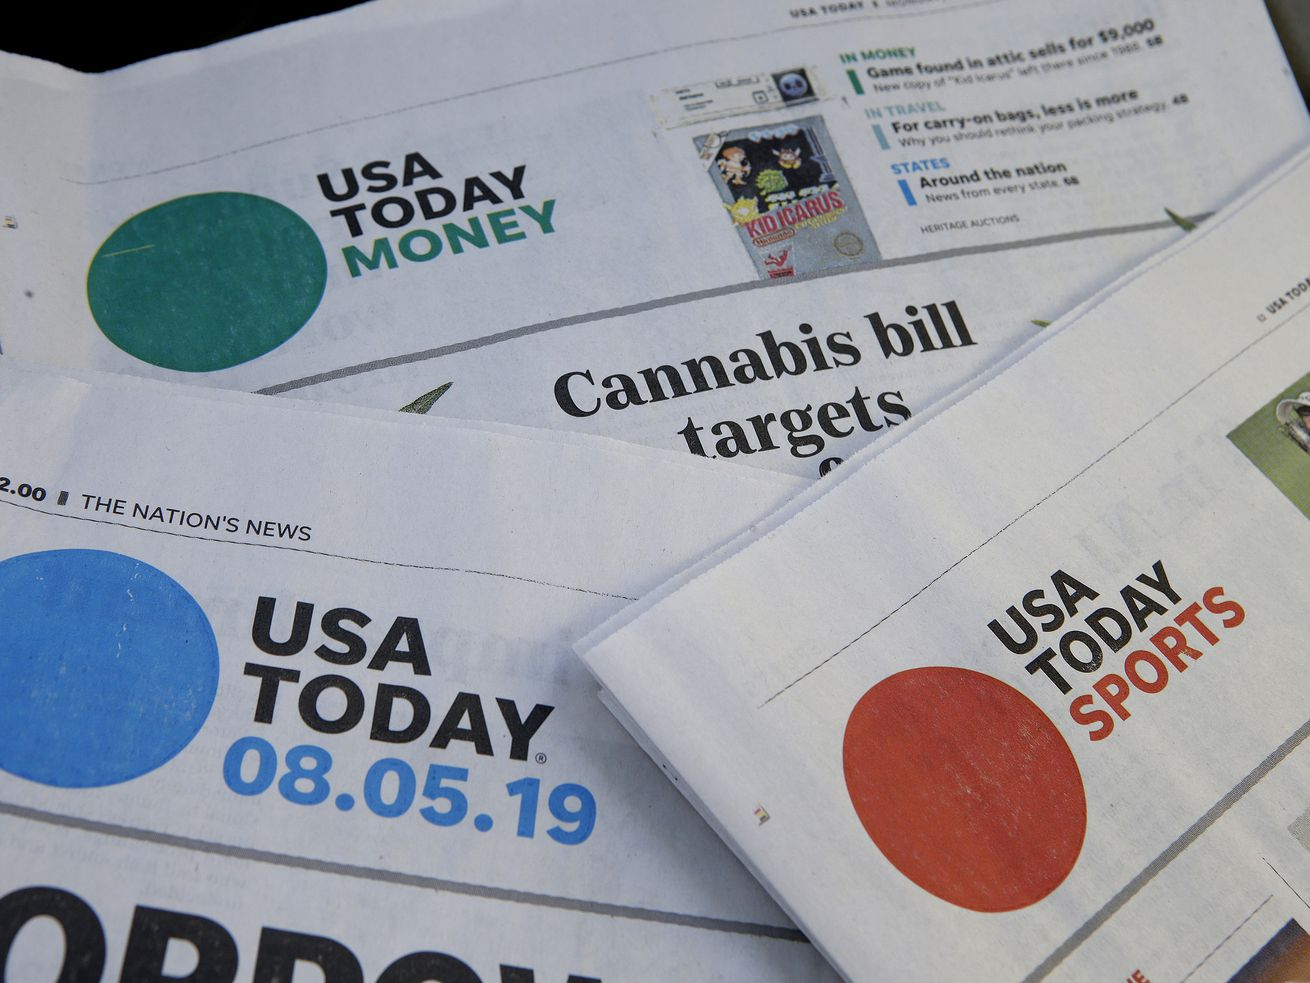 In this Aug. 5, 2019, file photo, sections of a USA Today newspapers in Norwood, Mass. The FBI issued a subpoena demanding U.S. newspaper giant Gannett provide agents with information to track down readers of a USA Today story about a suspect in a child pornography case who fatally shot two FBI agents in February.